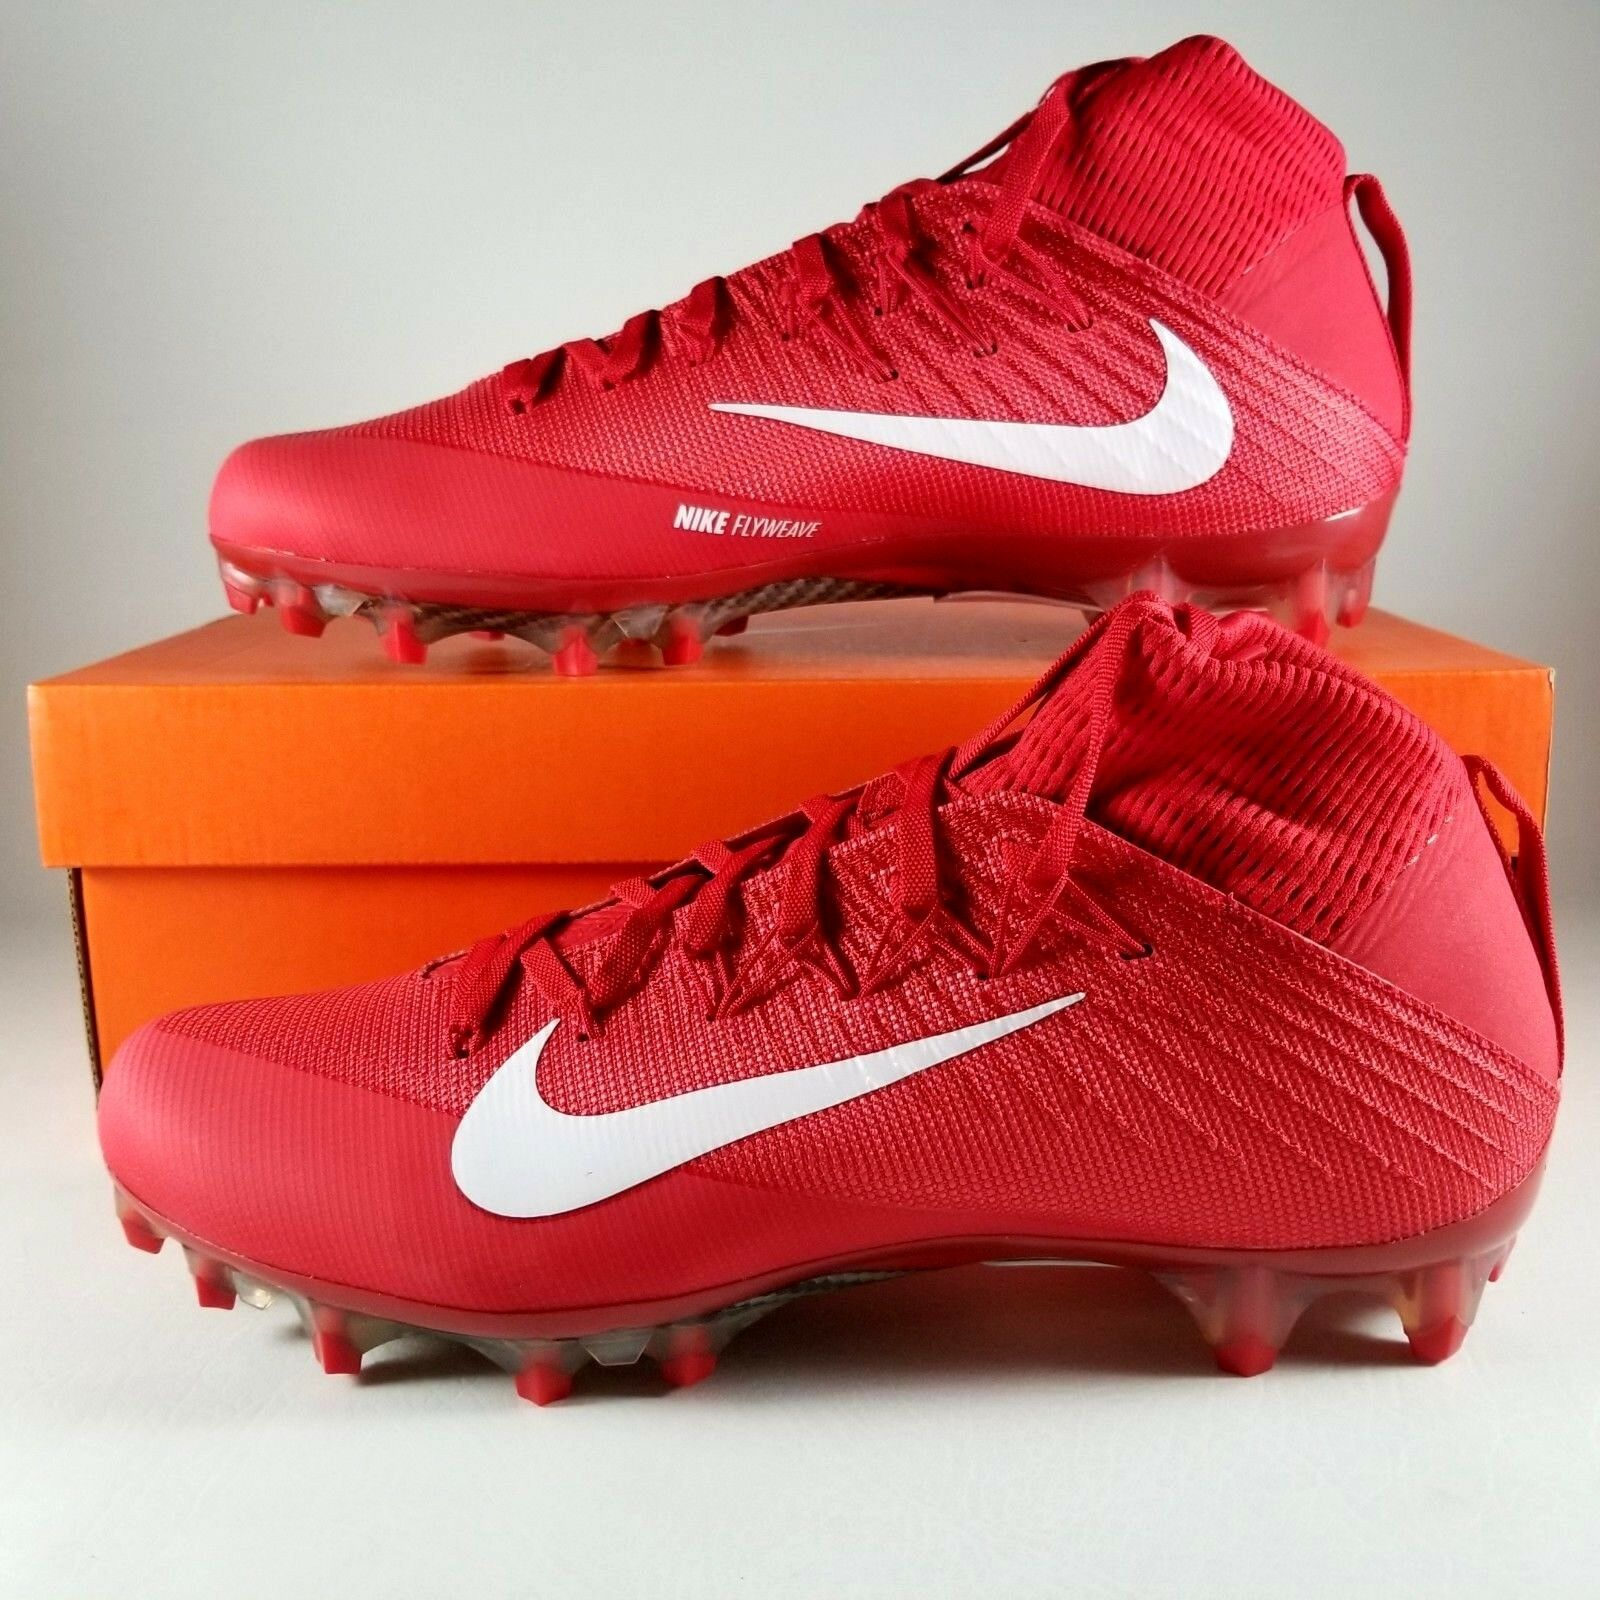 1524296ff7cd 57. 57. Previous. Nike Vapor Untouchable 2 CF Football Cleats Size 12 Mens  FB Boots Red White Gray